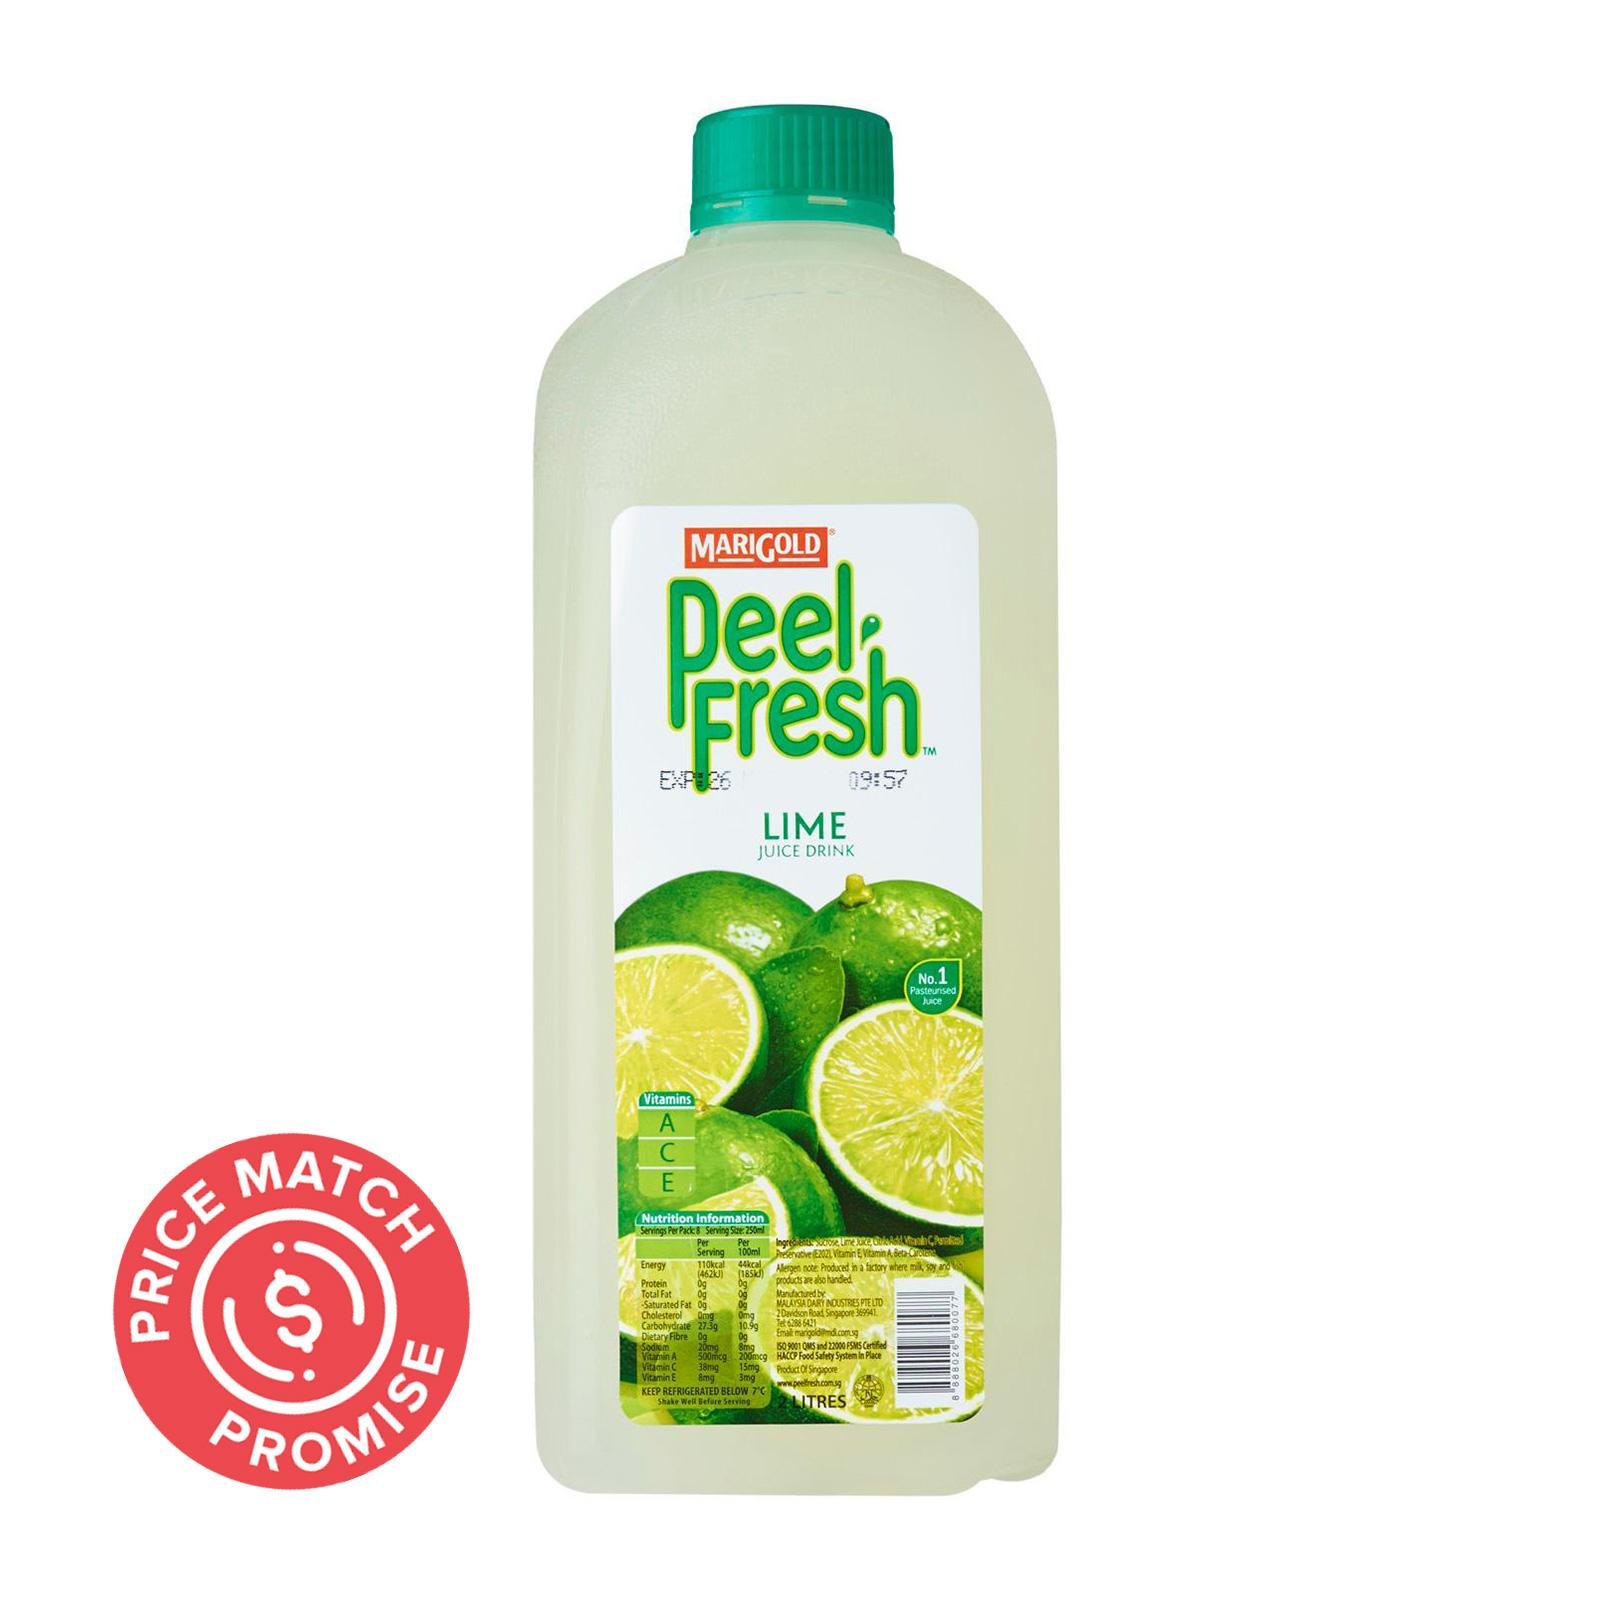 MARIGOLD Peel Fresh Juice Drink - Lime 2L